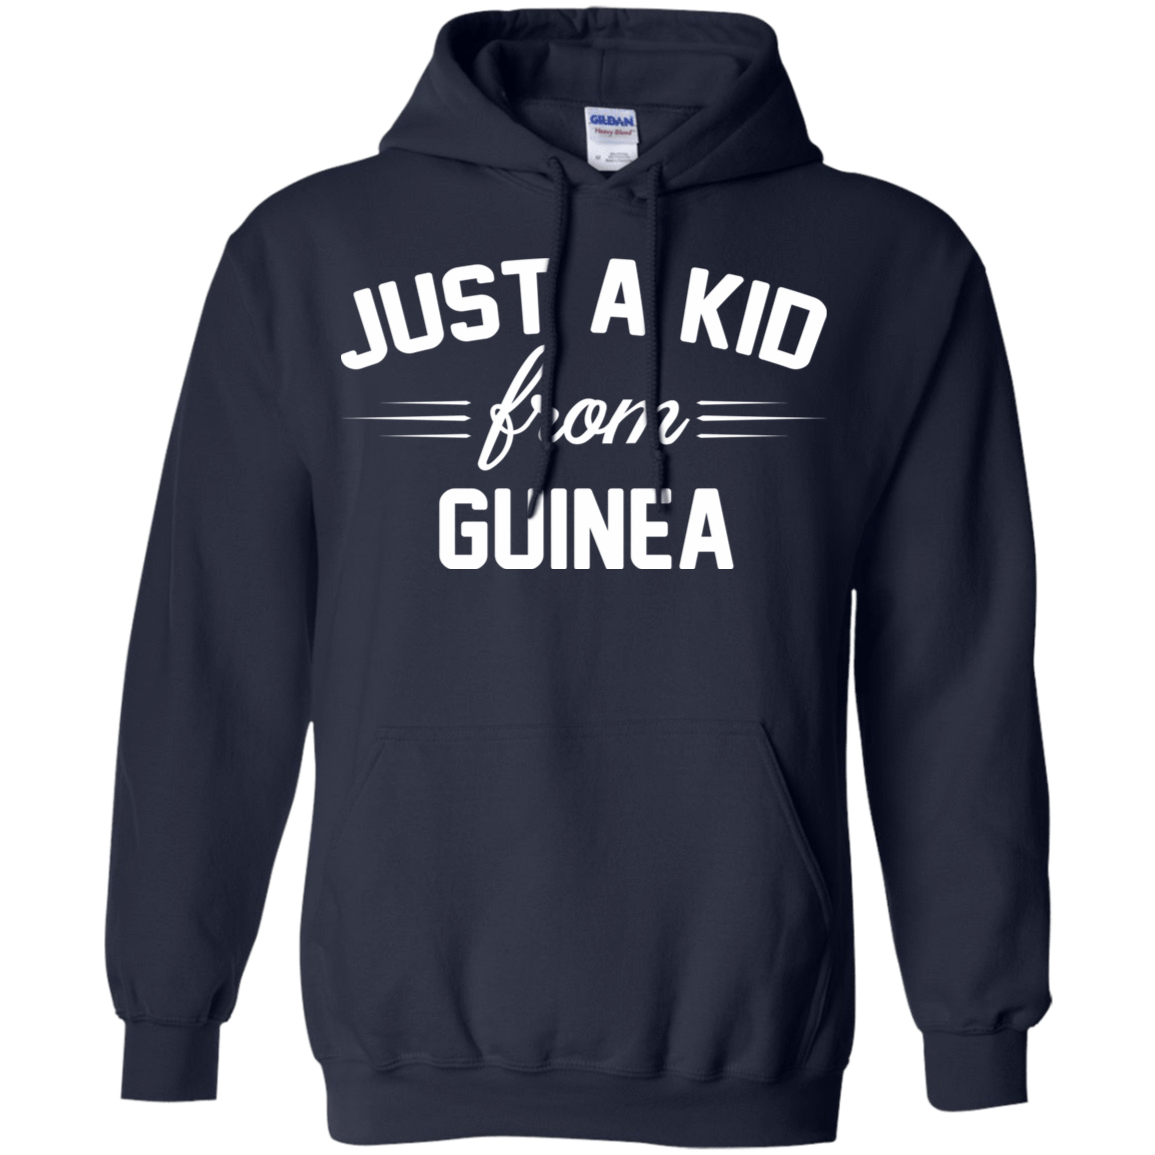 Just a Kid Store | Guinea T-Shirts, Hoodie, Tank 541-4742-72091628-23135 - Tee Ript